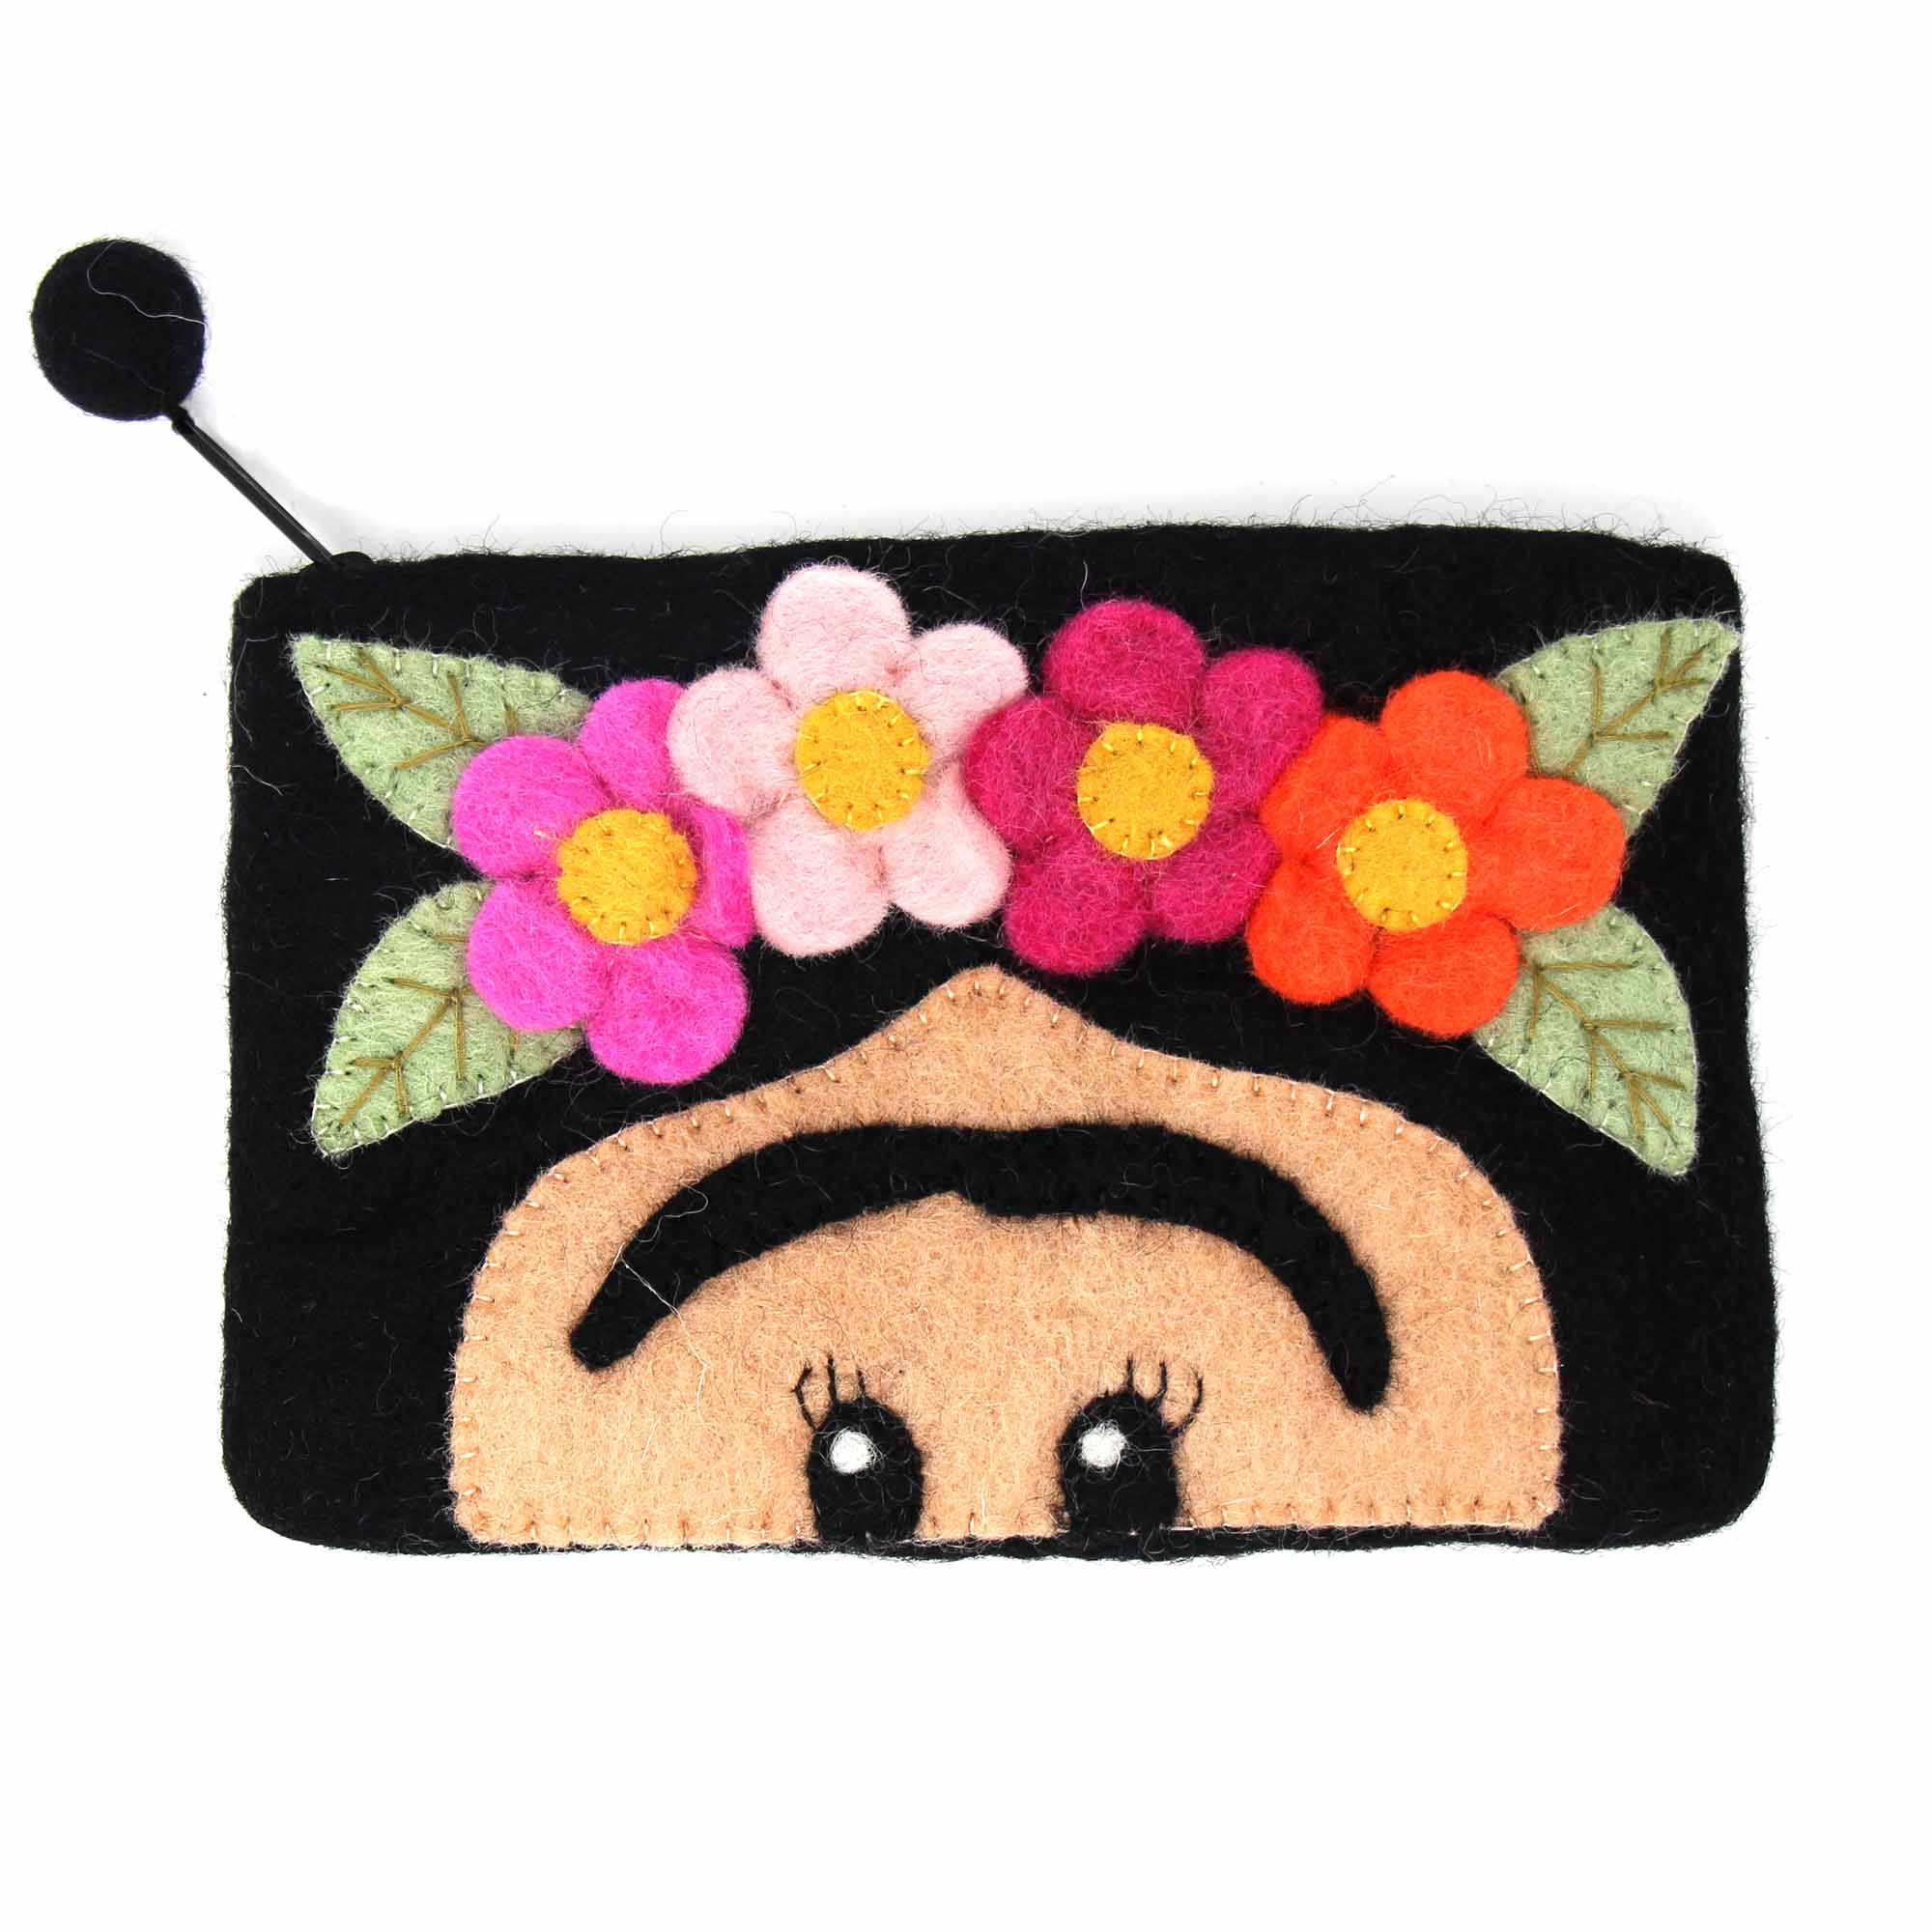 Frida Felt Zipper Pouch